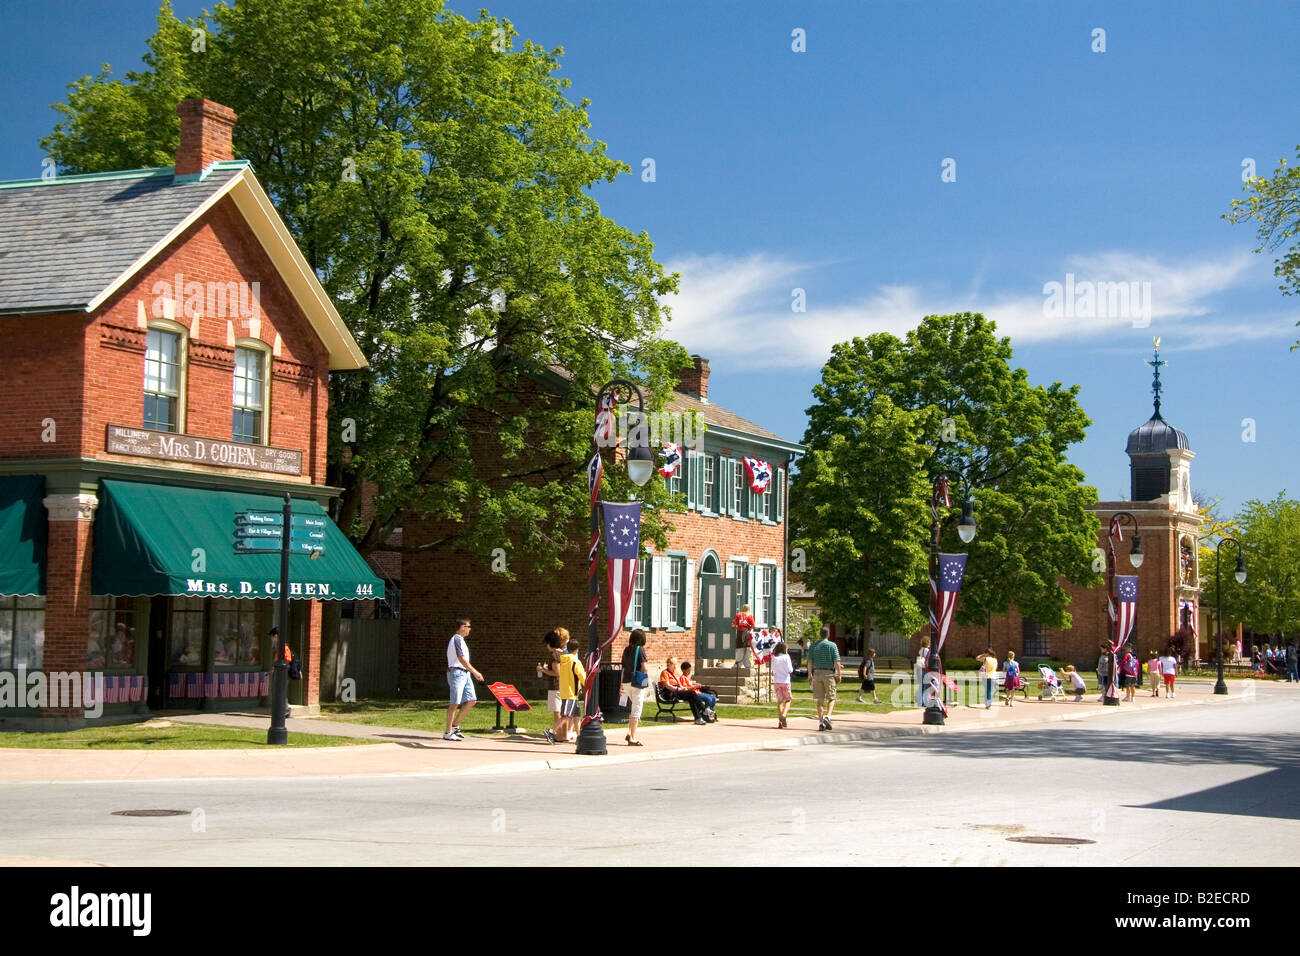 Historic buildings in Greenfield Village at The Henry Ford in Dearborn Michigan - Stock Image